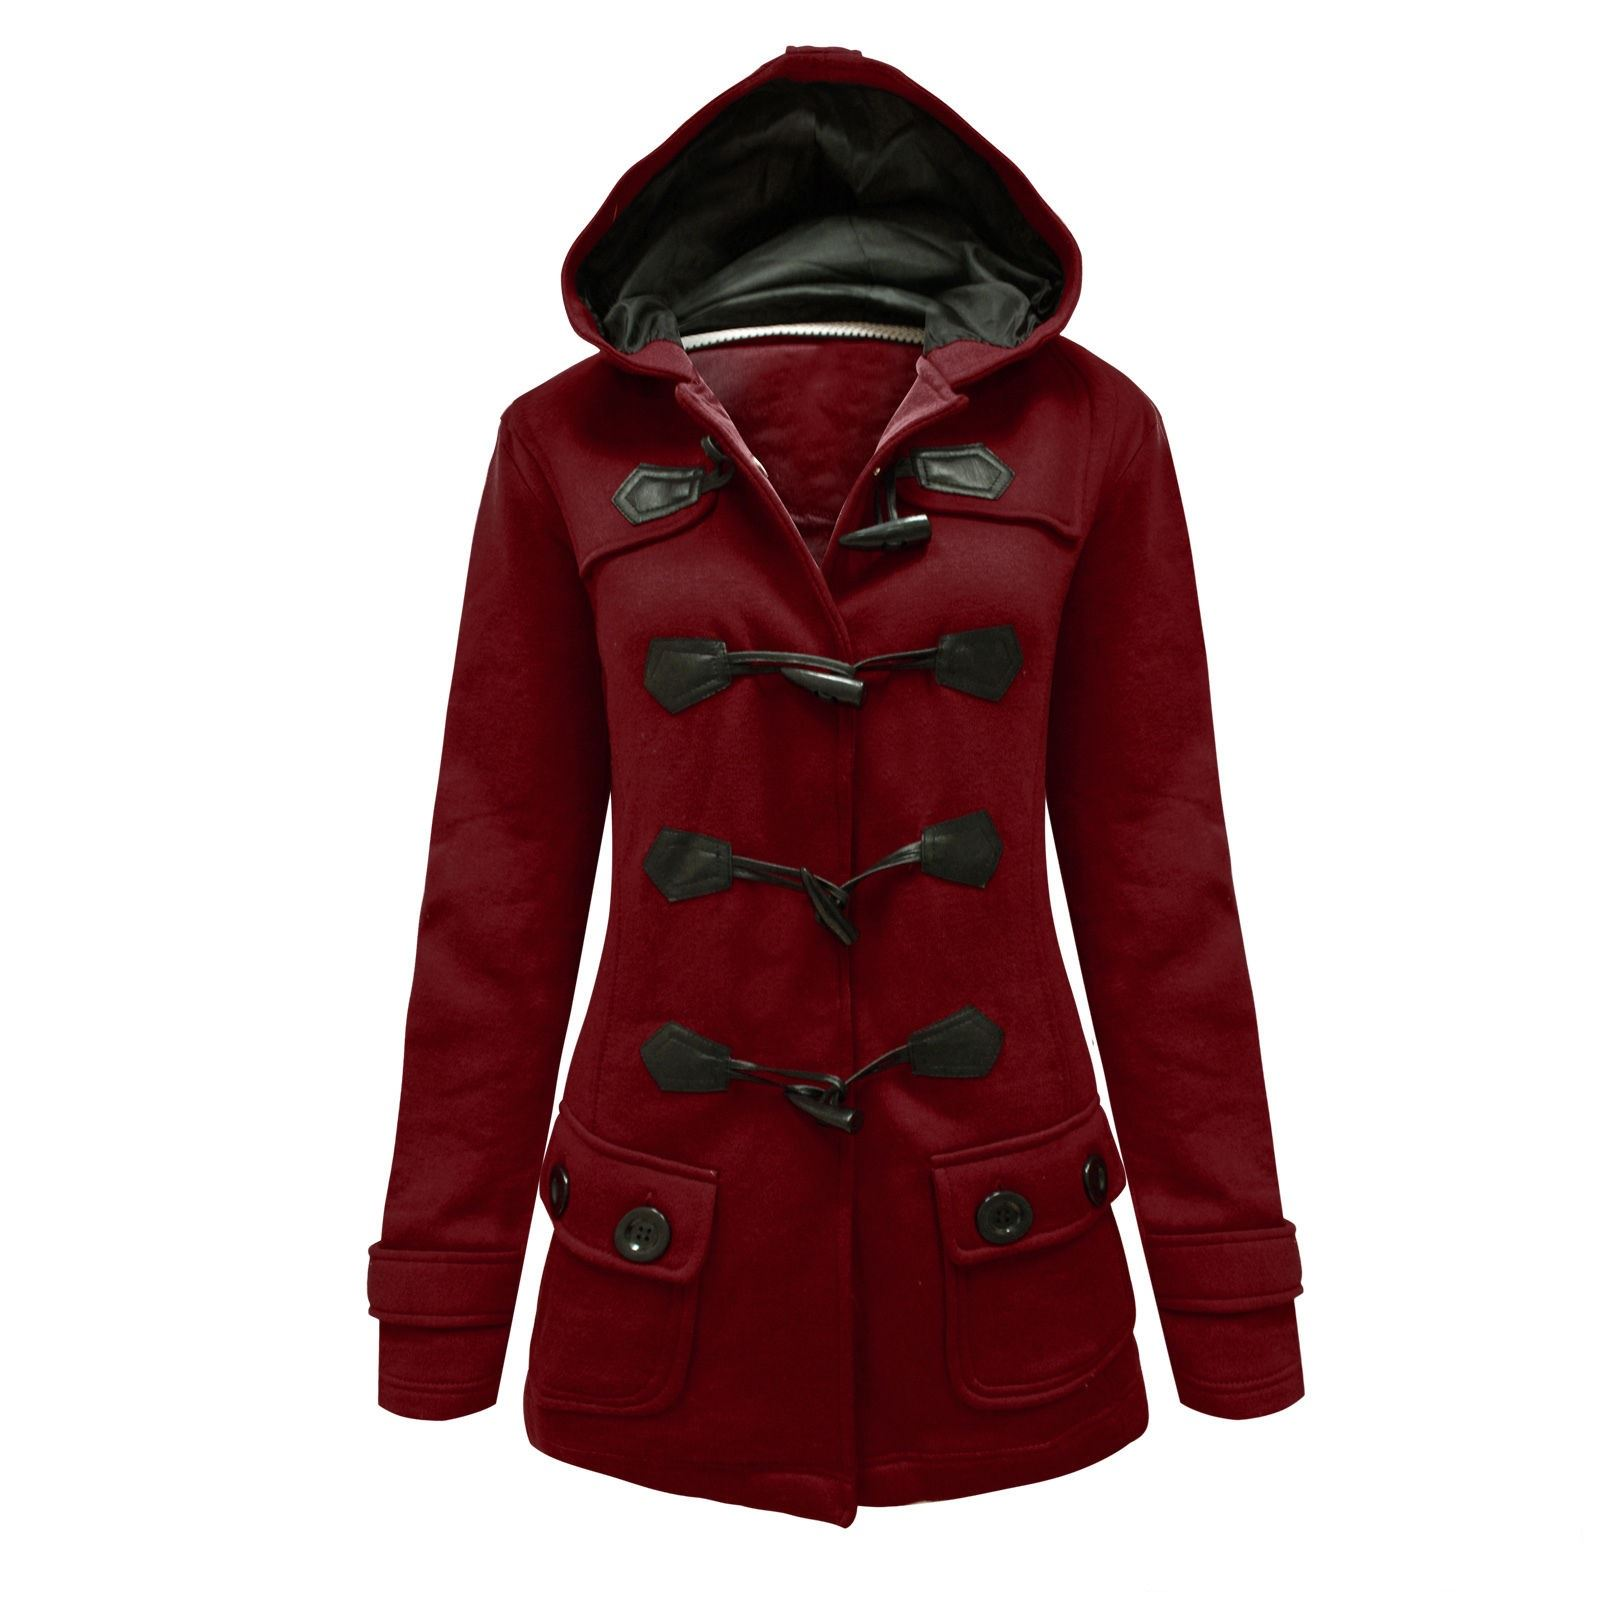 Find Duffle from the Womens department at Debenhams. Shop a wide range of Coats & jackets products and more at our online shop today. Menu Tall black faux fur hooded duffle coat Save. Was £ Now £ The Collection Navy hooded duffle coat .